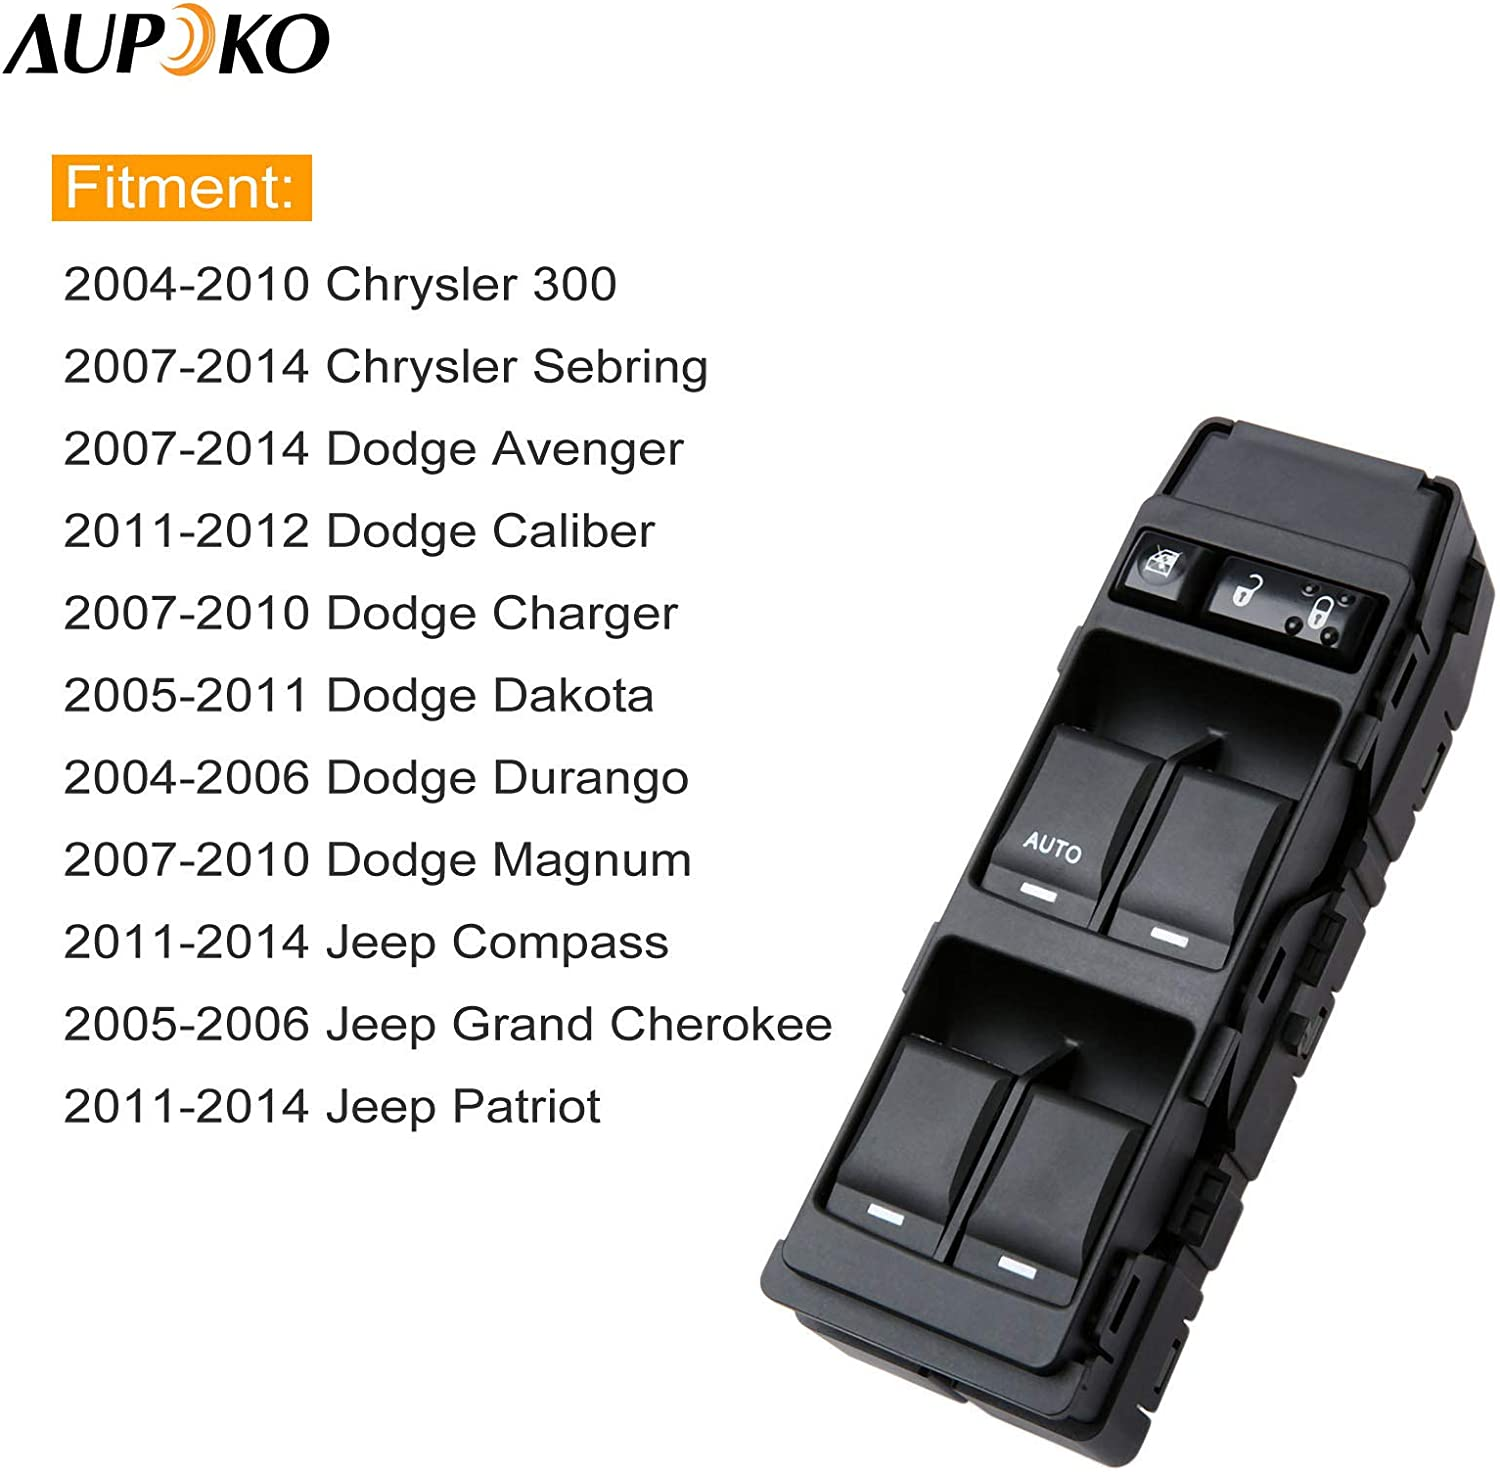 Power Window Switch Replacement fits for 2007-2010 Dodge Caliber Hatchback 2009-2010 Chrysler 300 2007-2010 Chrysler Sebring 2007-2008 Dodge Magnum 2013-2017 Jeep Compass Patriot Replace 4602780AA